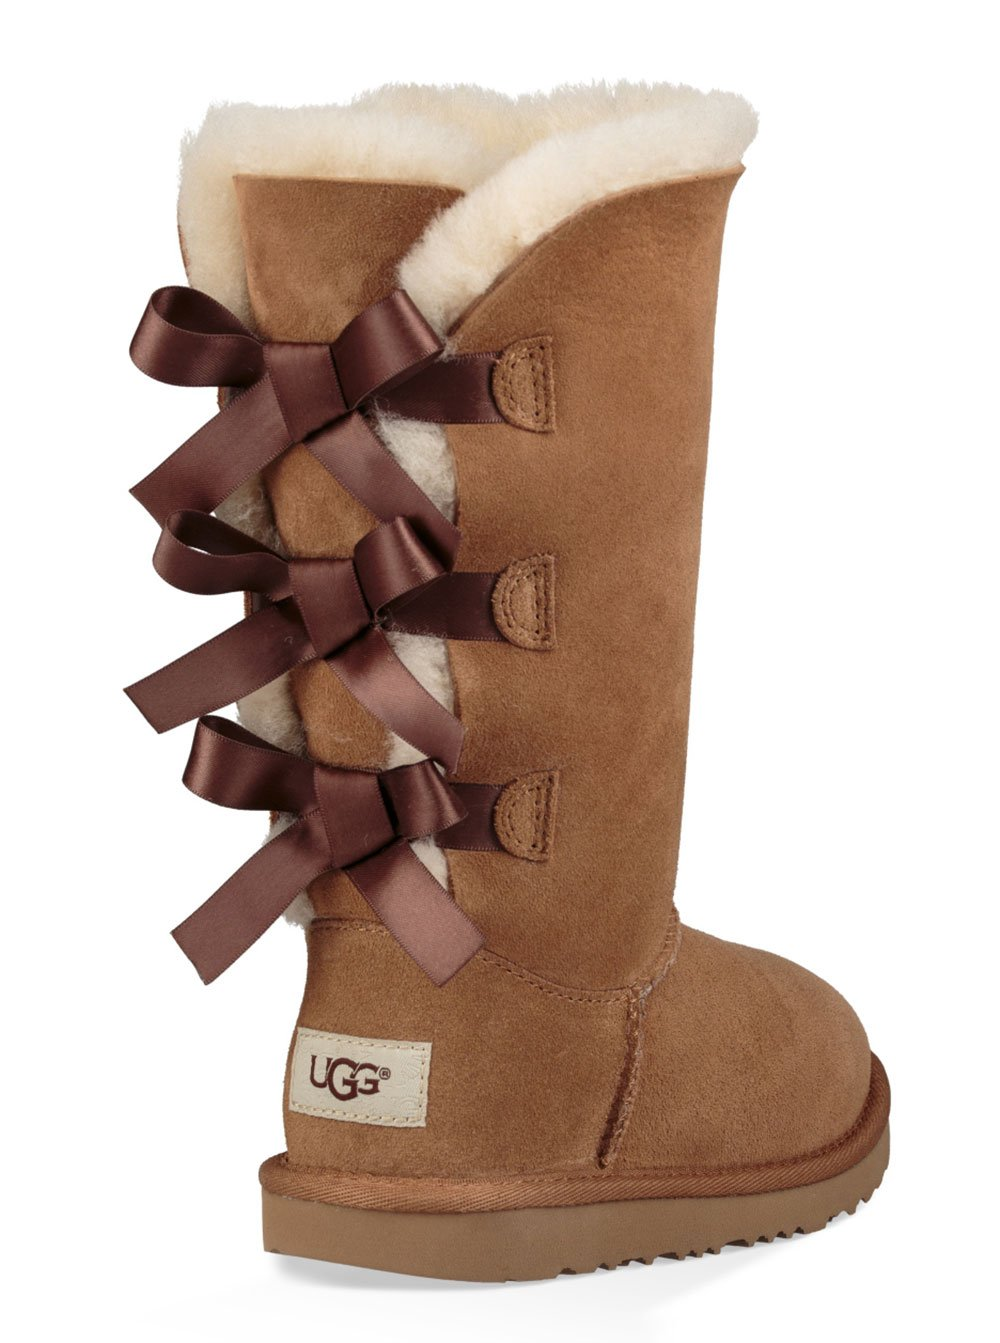 a8307b006e8 UGG Boots | Slippers | Shavertown, PA